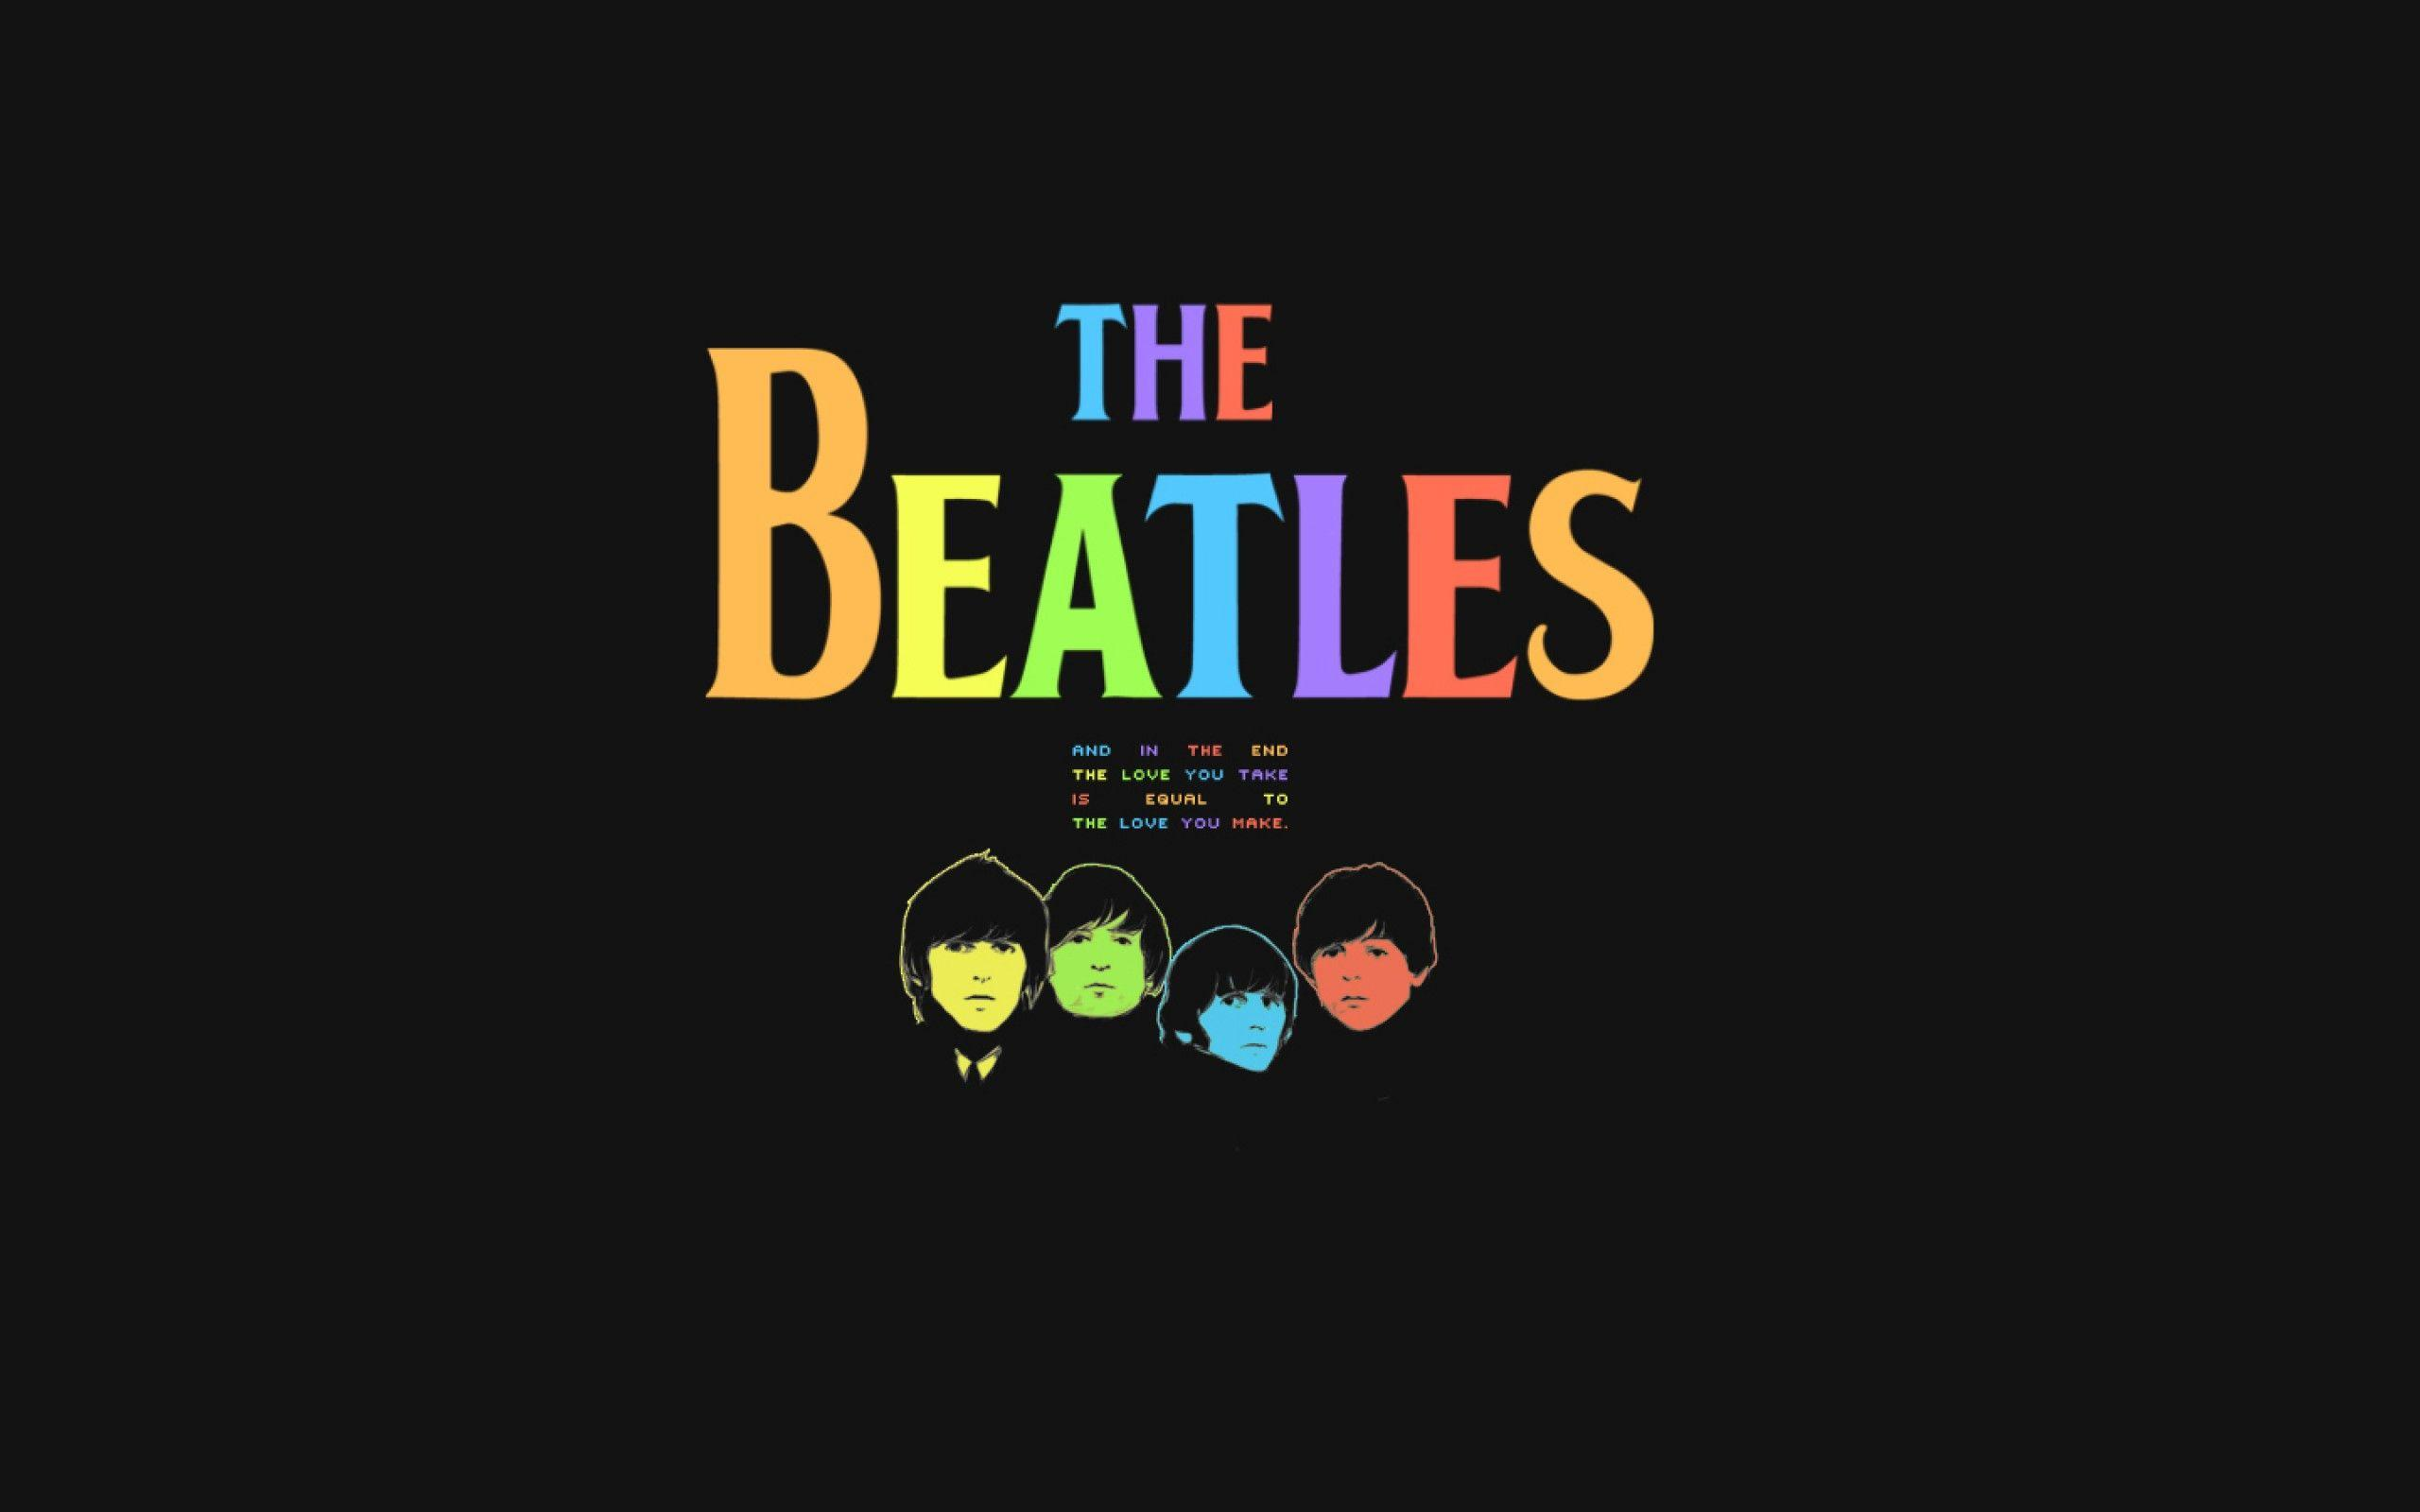 Wallpapers For The Beatles Rock Band Wallpaper